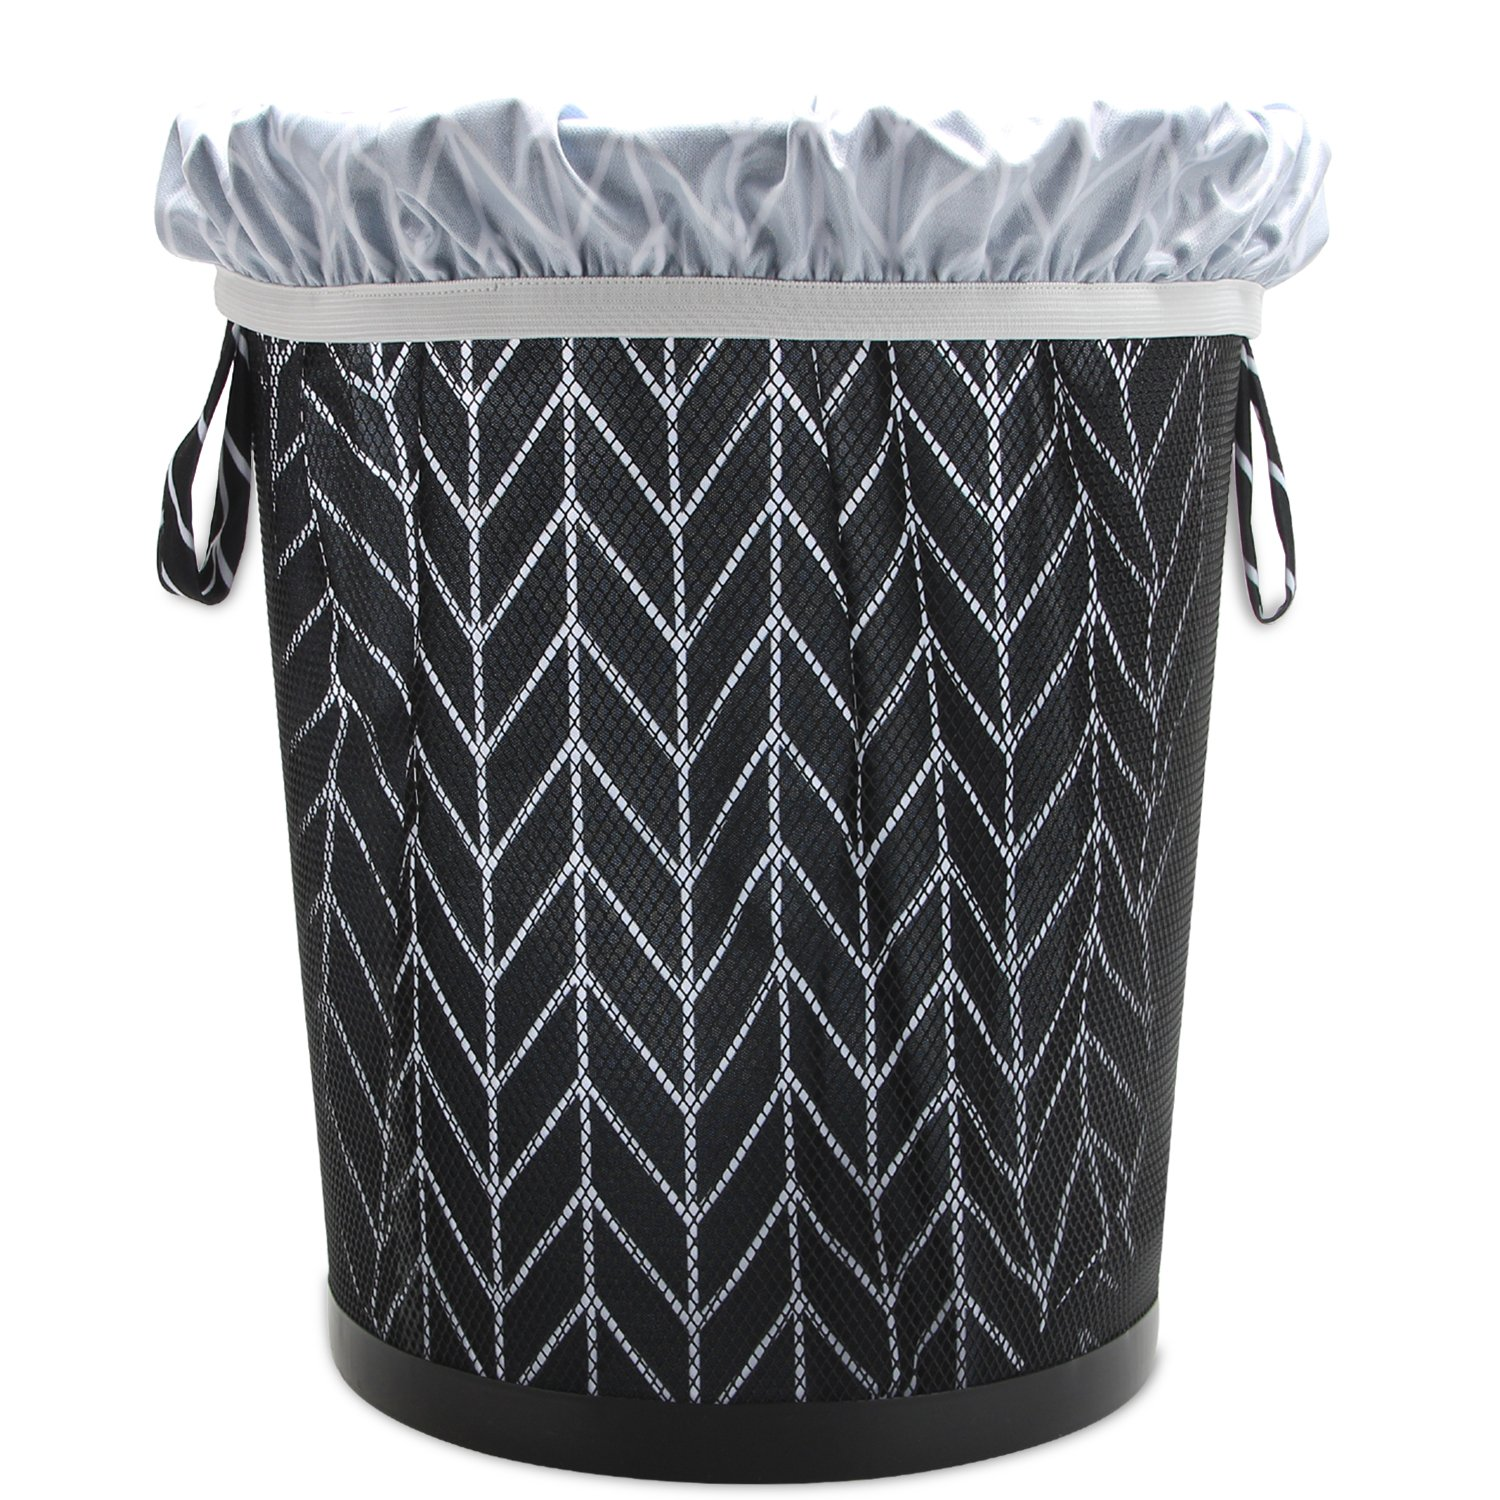 Reusable Pail Liner for Cloth Diaper//Dirty Diapers Wet Bag Teamoy Gray Triangle+Gray Dots 2 Pack